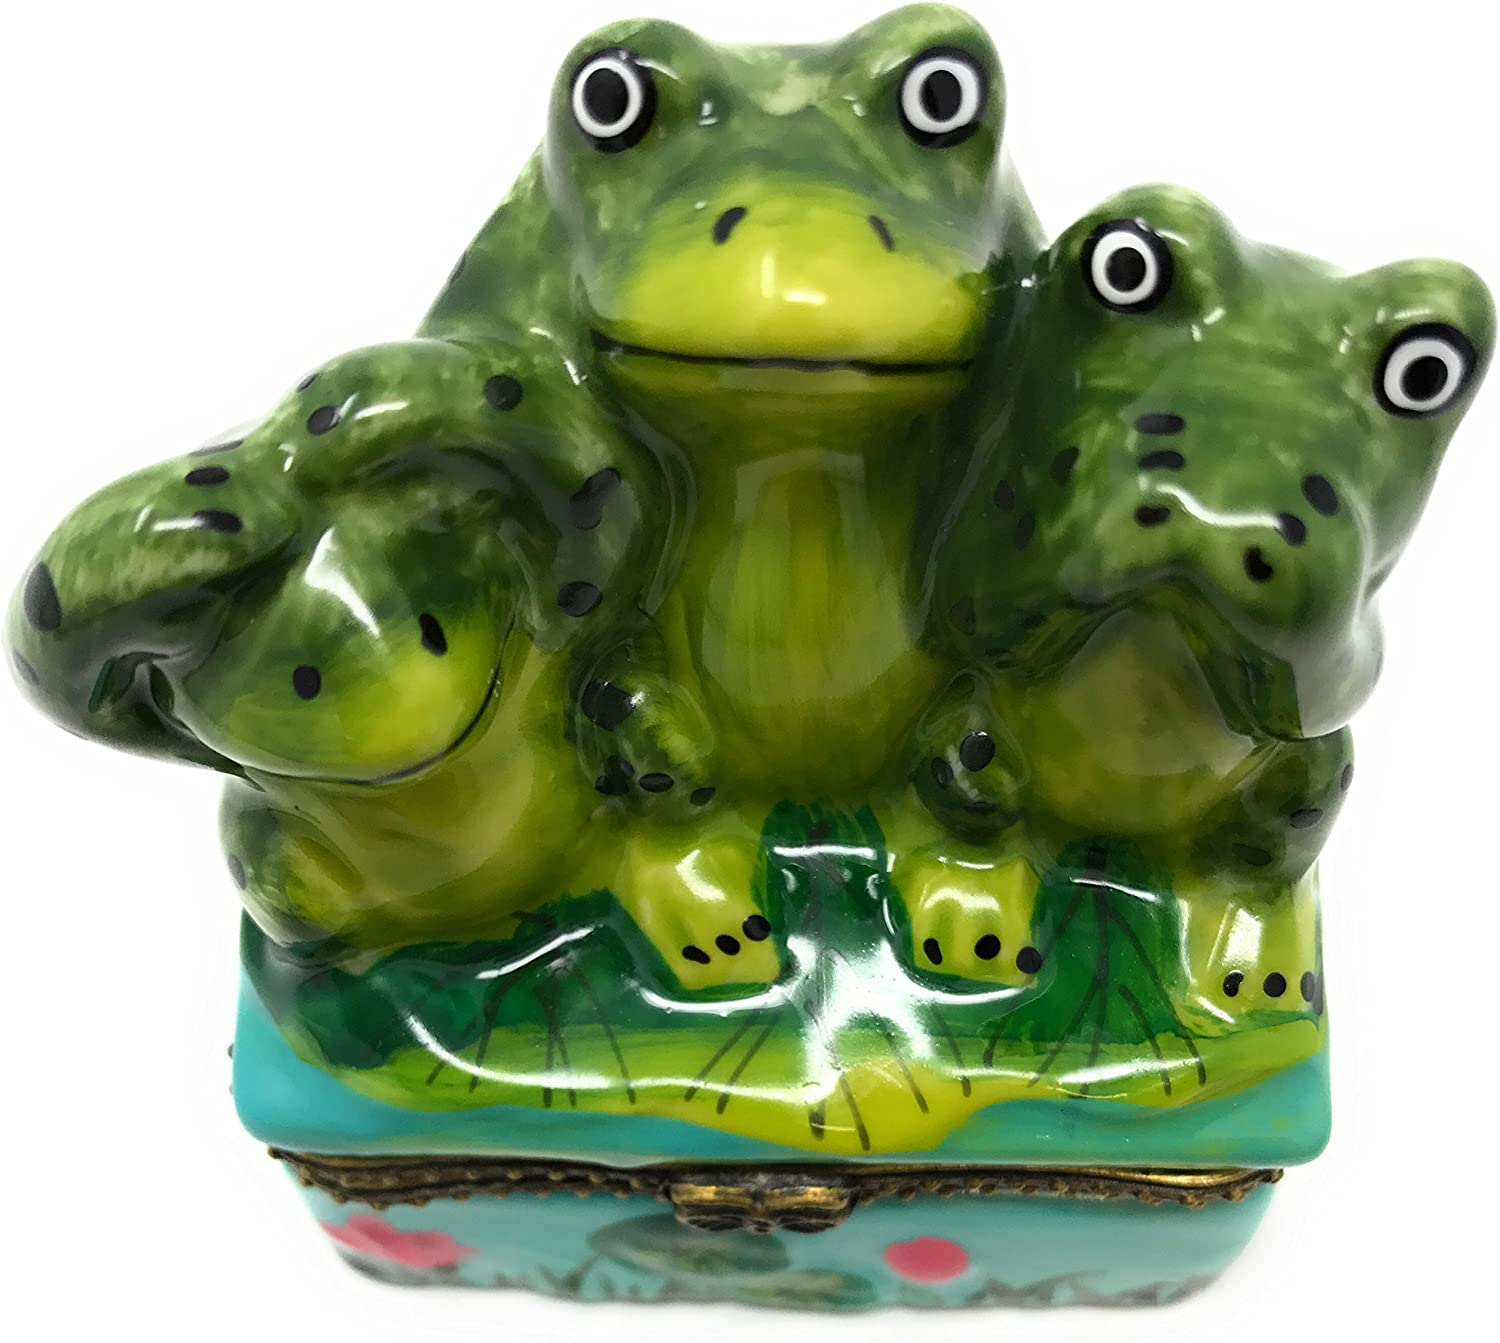 3 Frogs - See, Hear, Speak No Evil, Porcelain Hinged Lid Trinket Box with Tiny Trinket Inside, By ArtGifts, 2.5